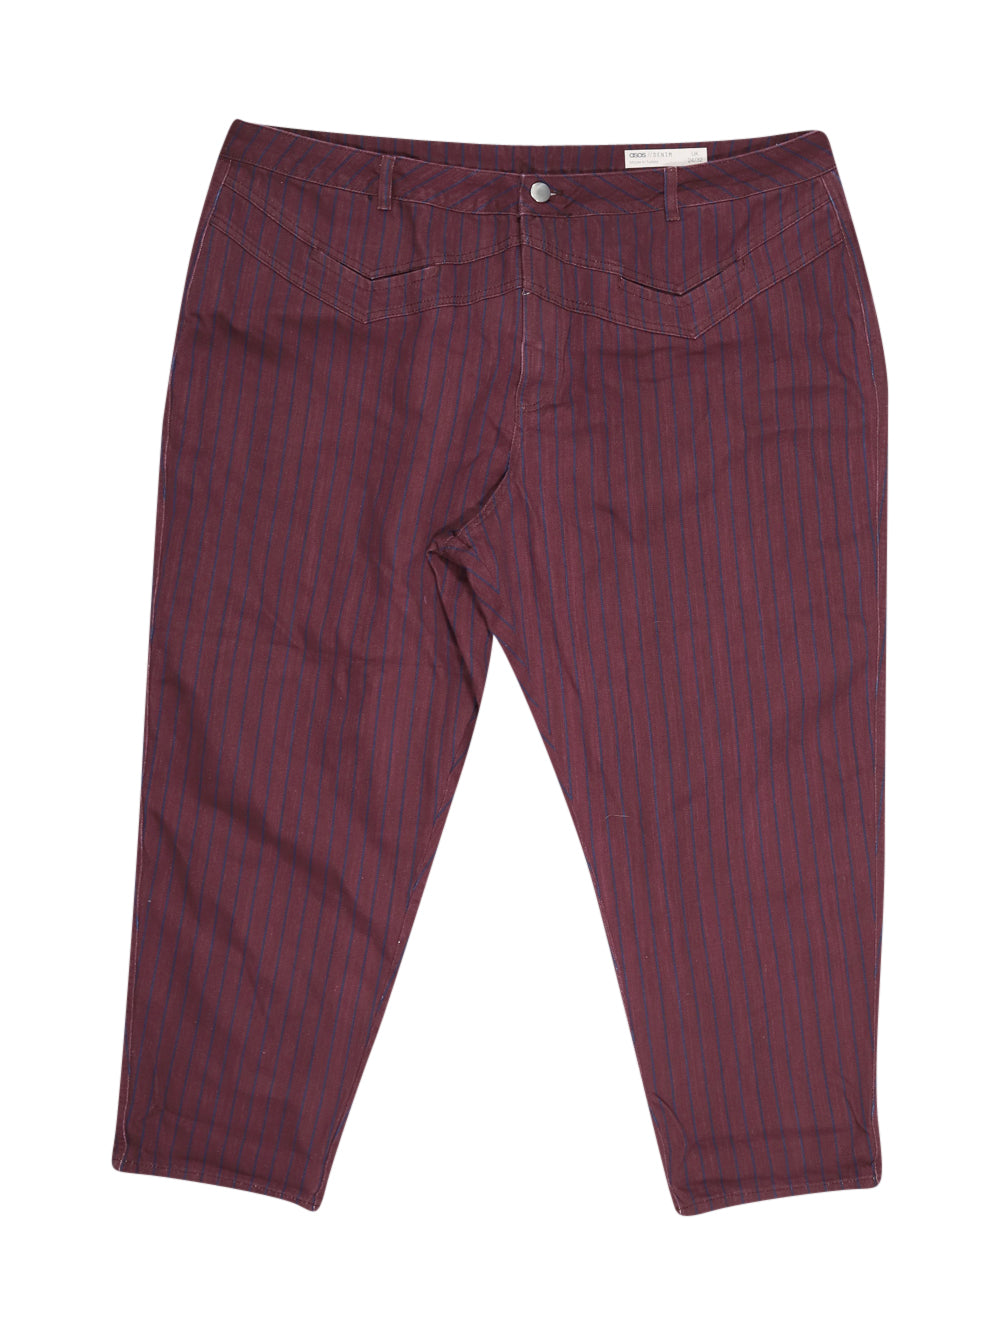 Front photo of Preloved Asos Bordeaux Woman's trousers - size 20/XXXXL